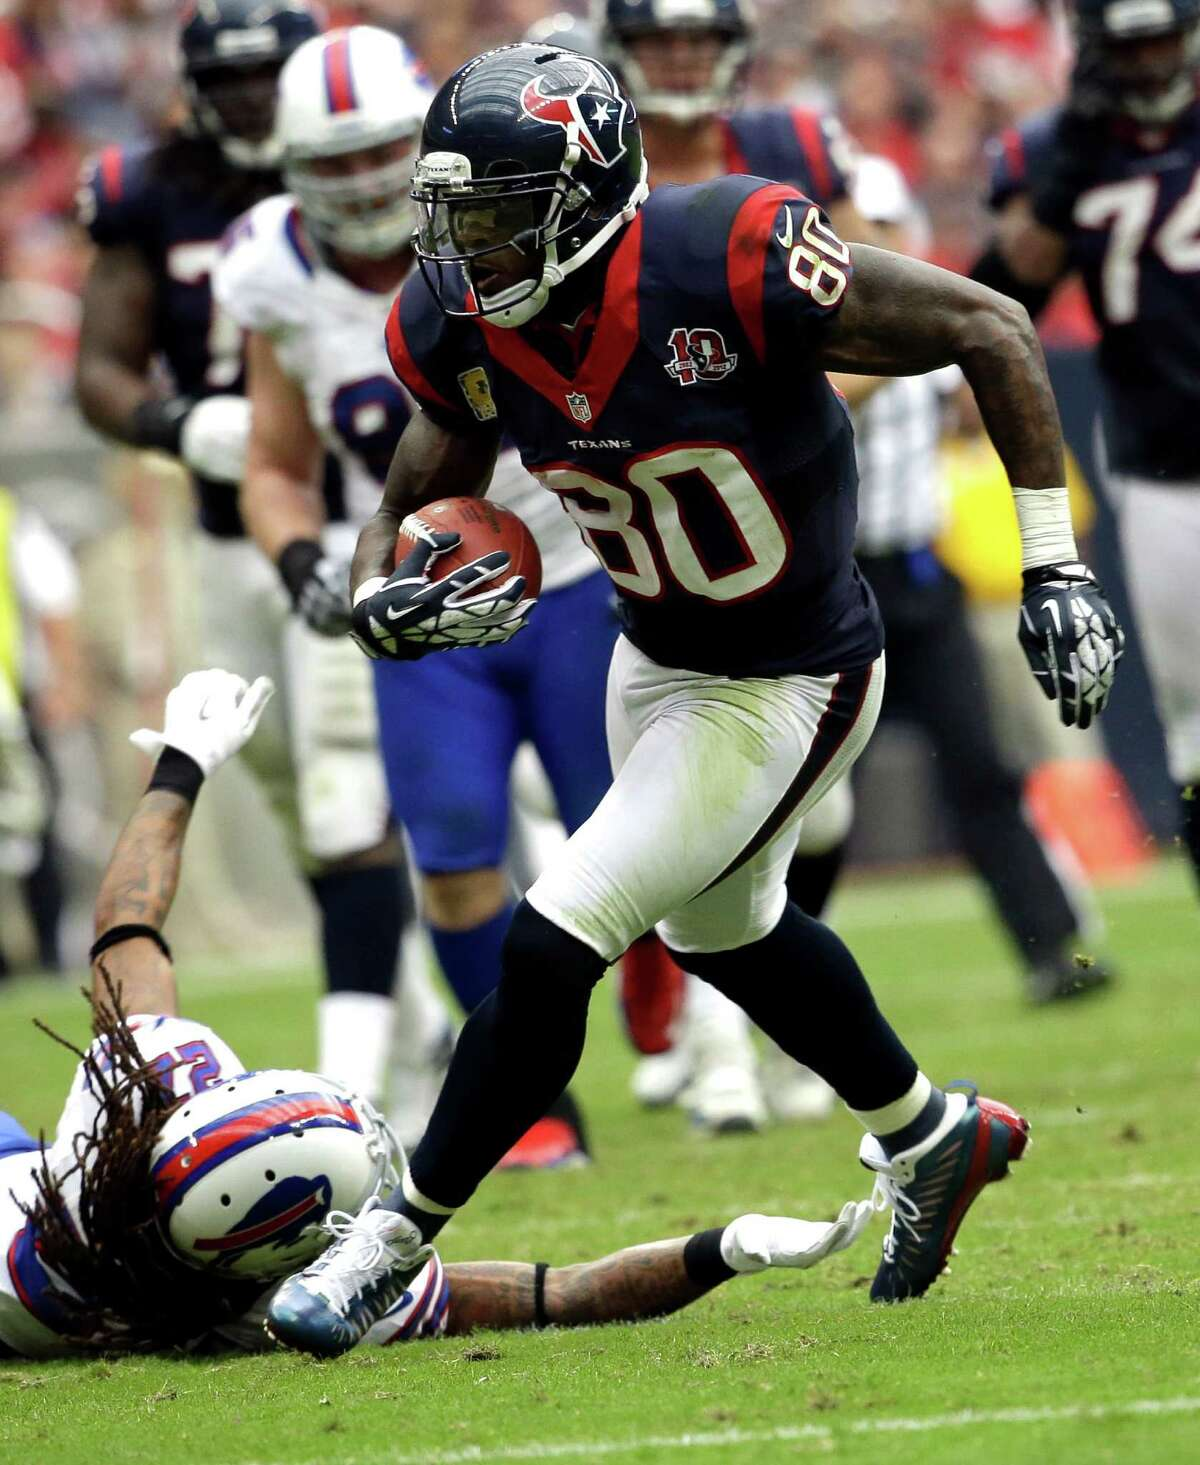 Houston Texans wide receiver Andre Johnson (80) catches a pass against the Buffalo Bills in the fourth quarter of an NFL football game Sunday, Nov. 4, 2012, in Houston. (AP Photo/David J. Phillip)